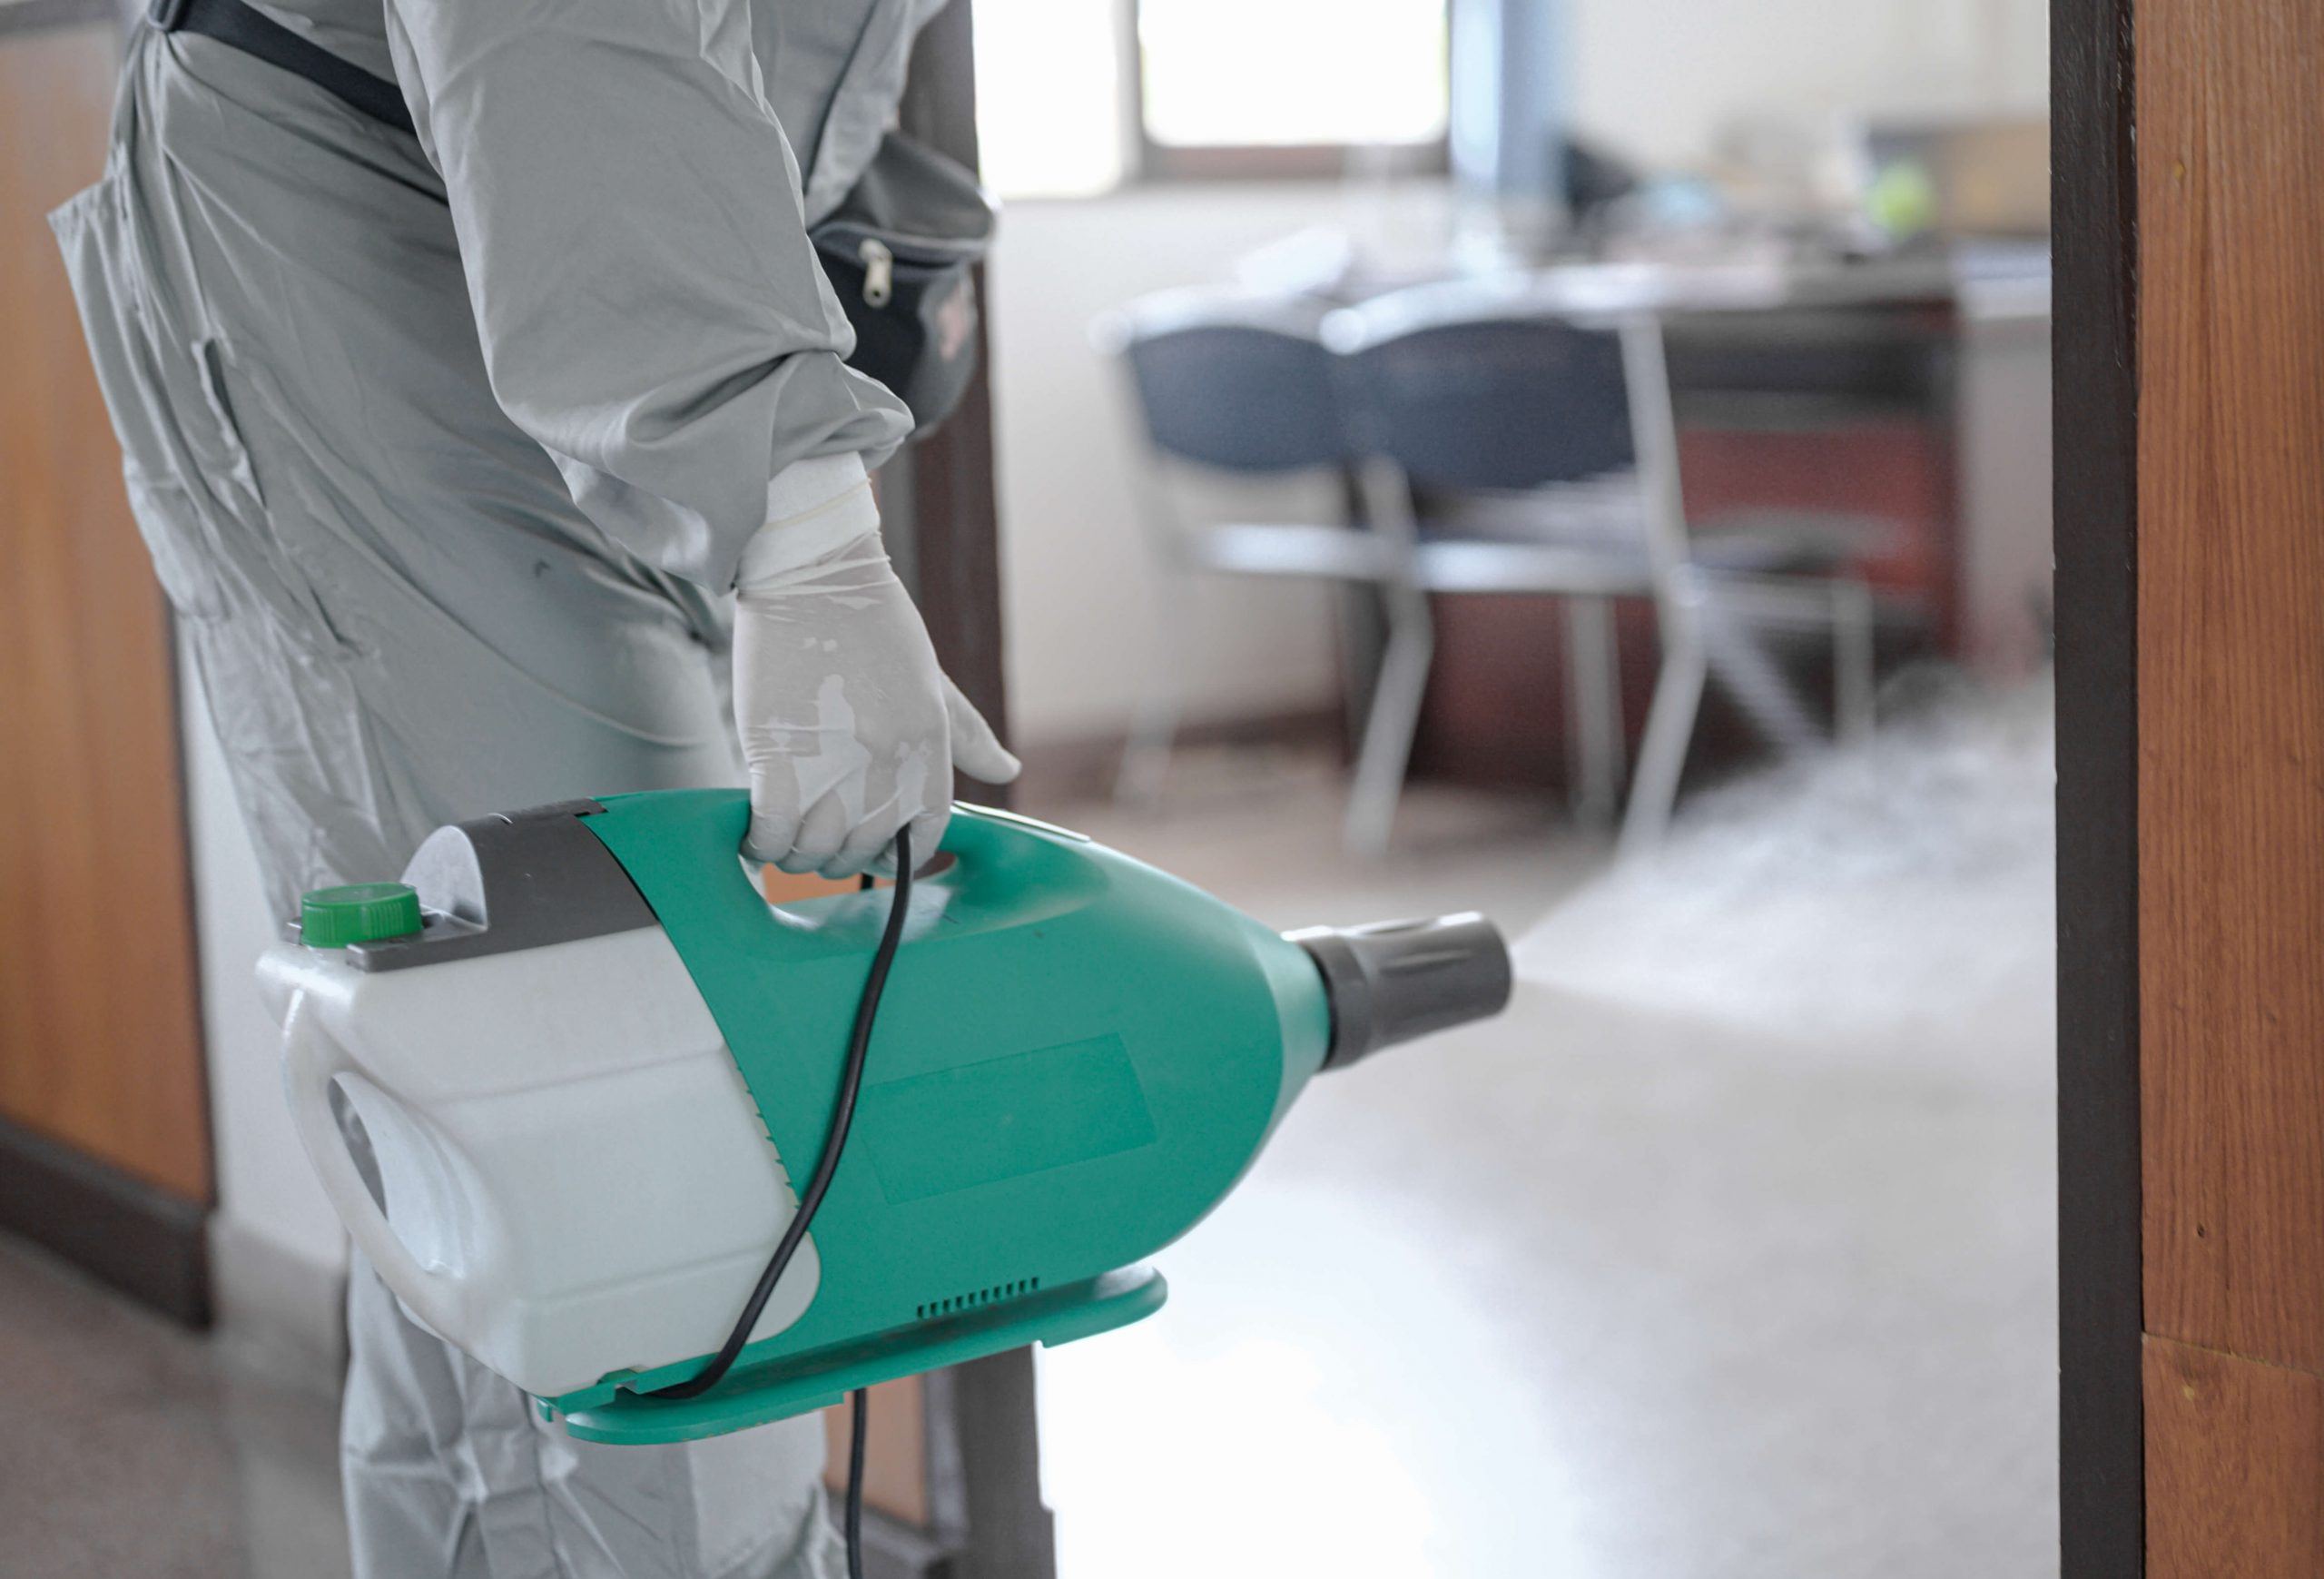 electro-disinfectant-cleaning-spray